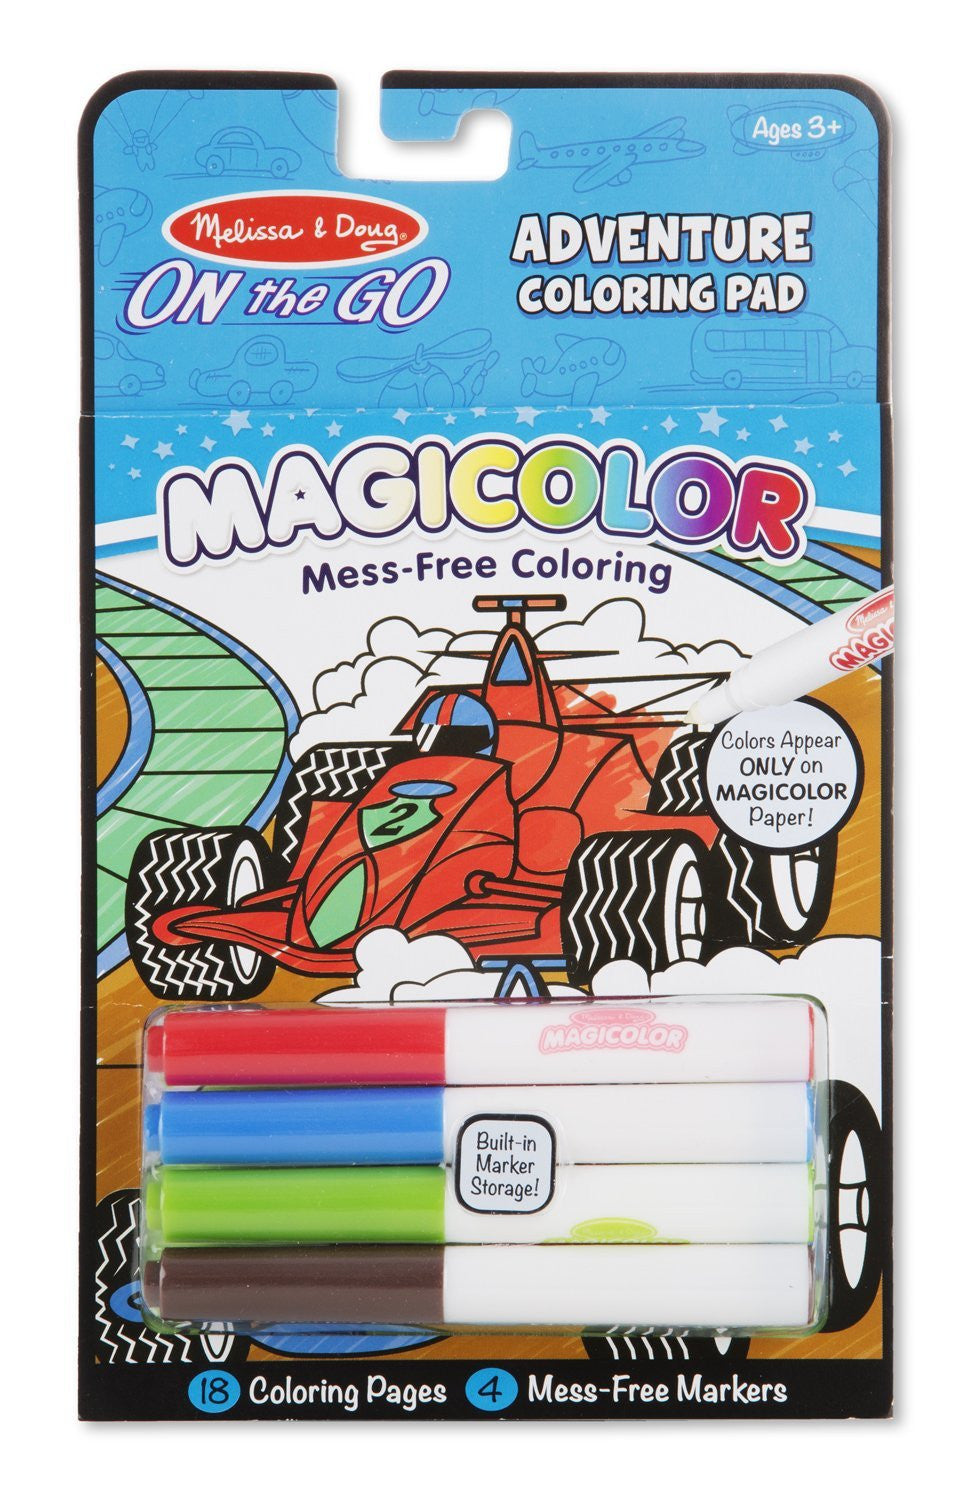 COLORING PAD - GAMES & ADVENTURE